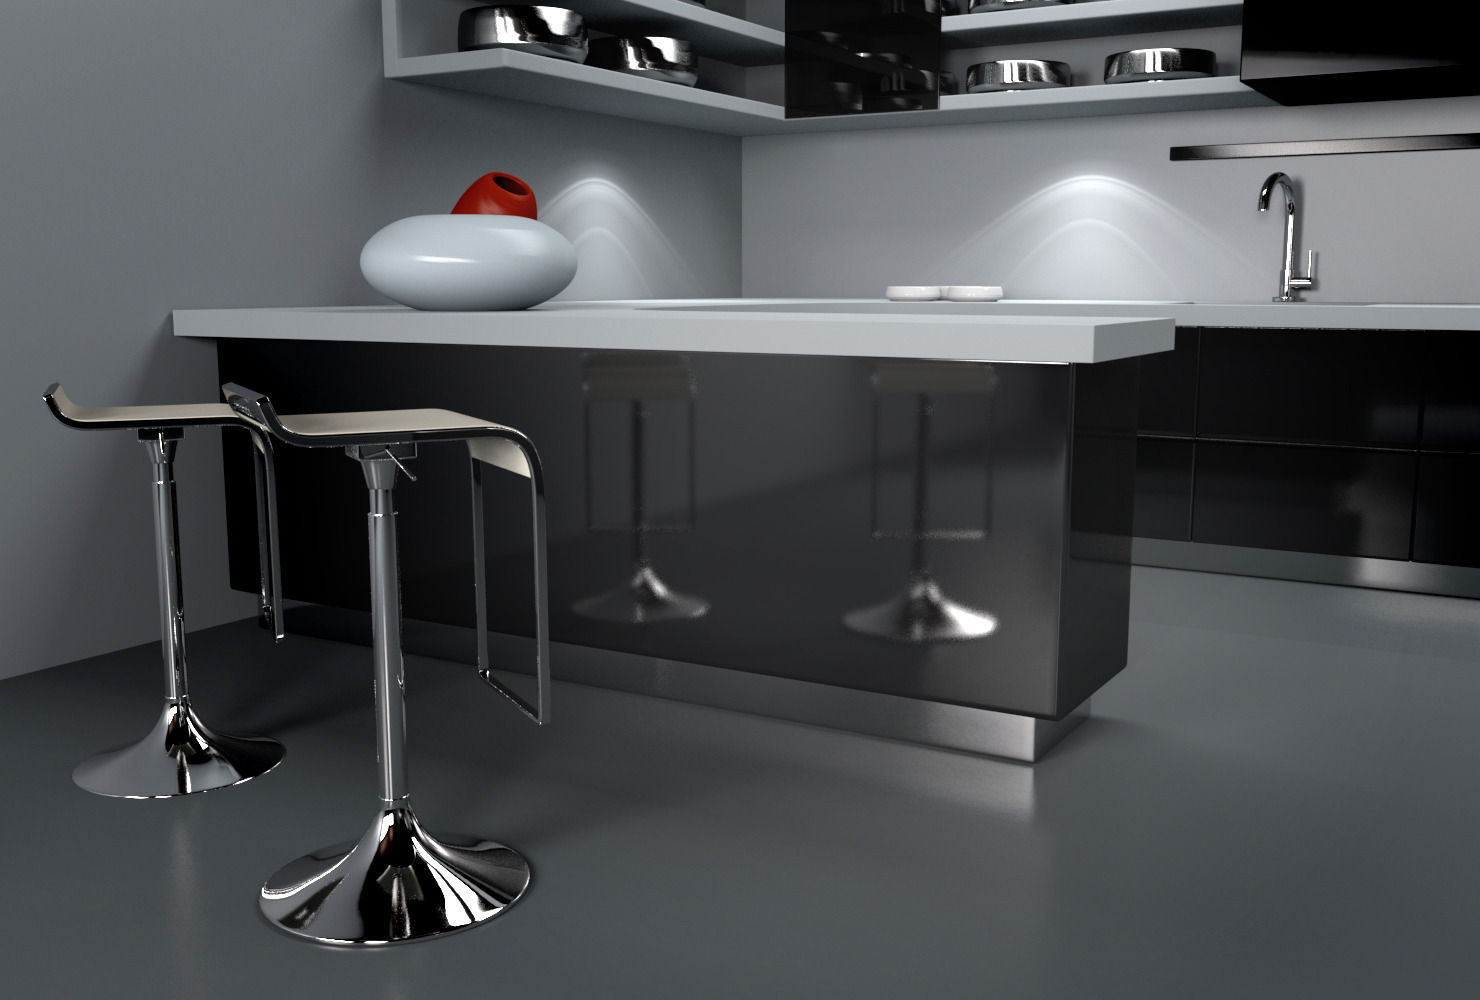 Kitchen 3d model ma mb for Model kitchen photo